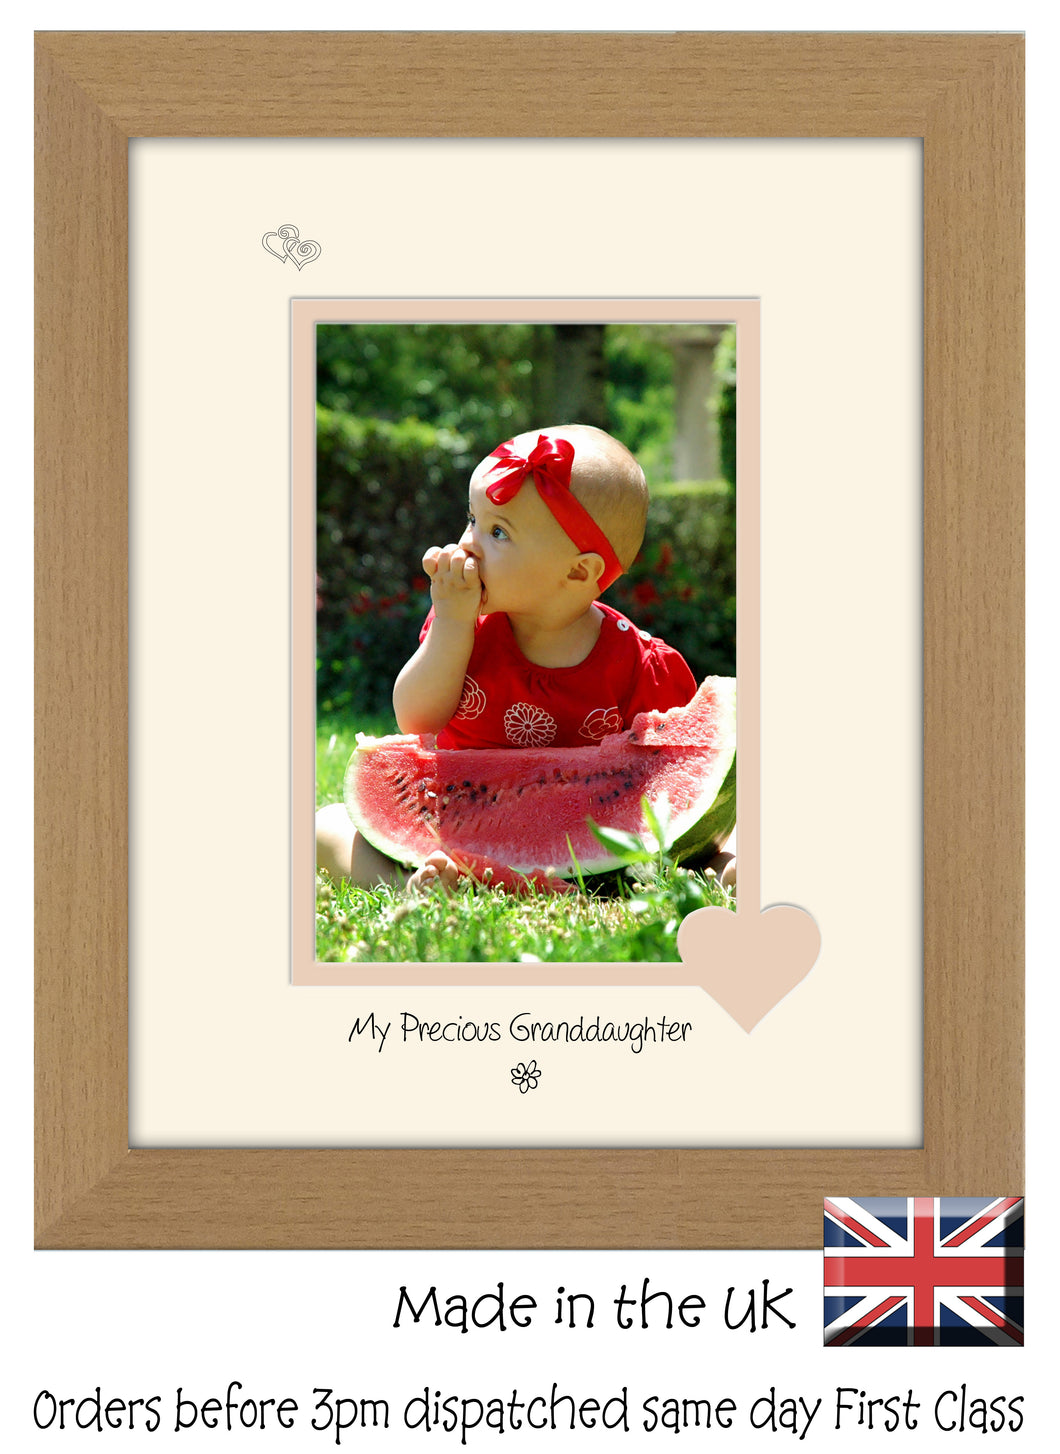 Granddaughter Photo Frame - My precious Granddaughter Portrait photo frame 6